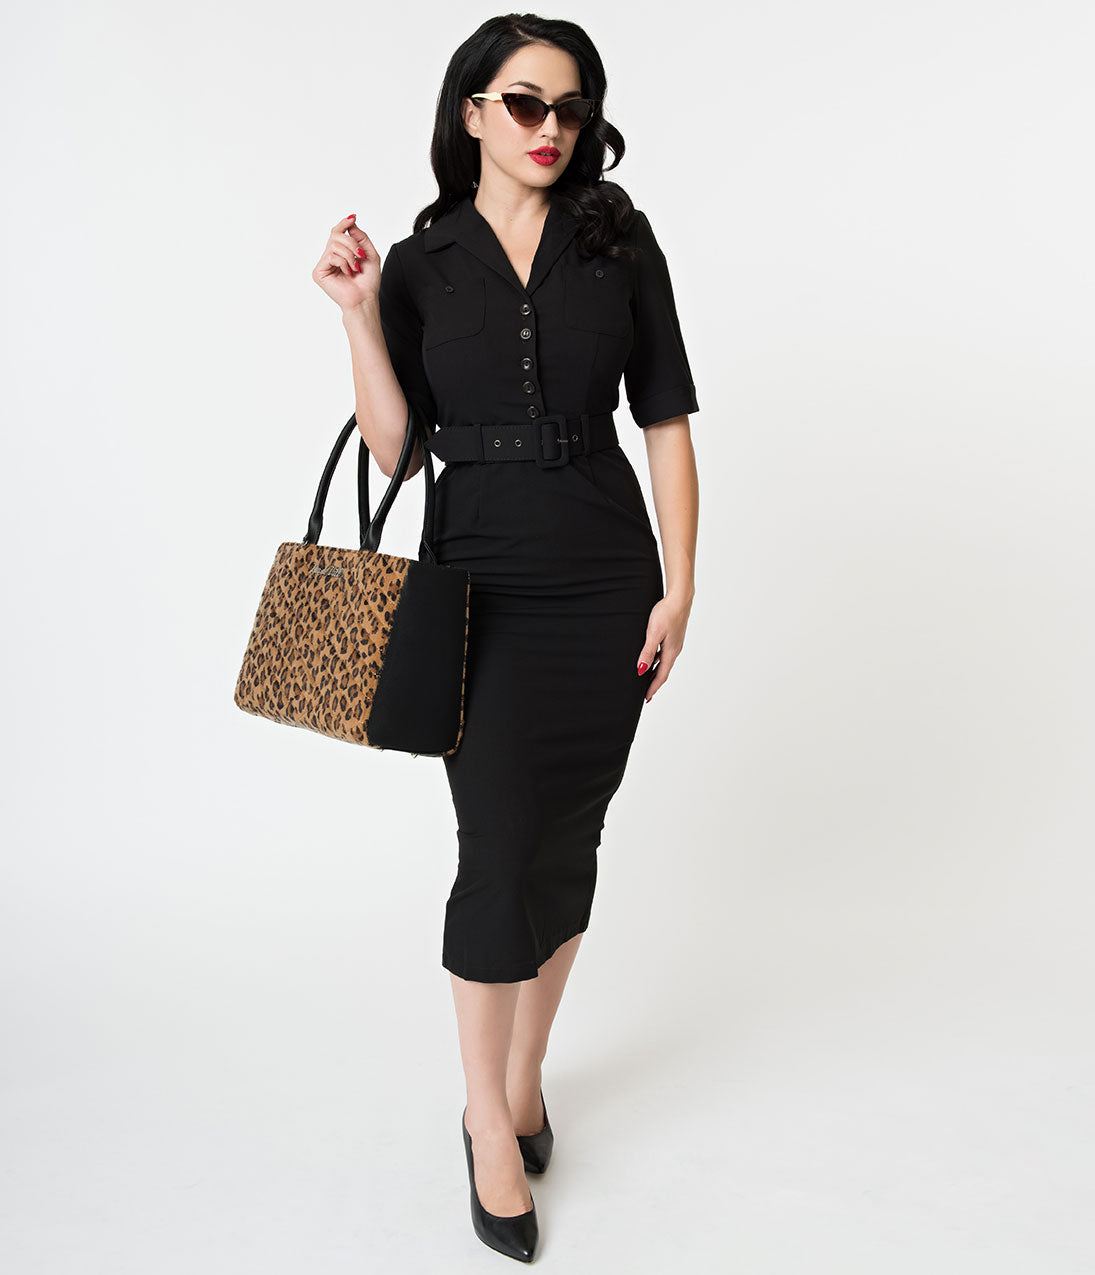 Wiggle Dresses | Pencil Dresses 40s, 50s, 60s Collectif 1950S Style Black Half Sleeve Zoe Midi Pencil Dress $78.00 AT vintagedancer.com